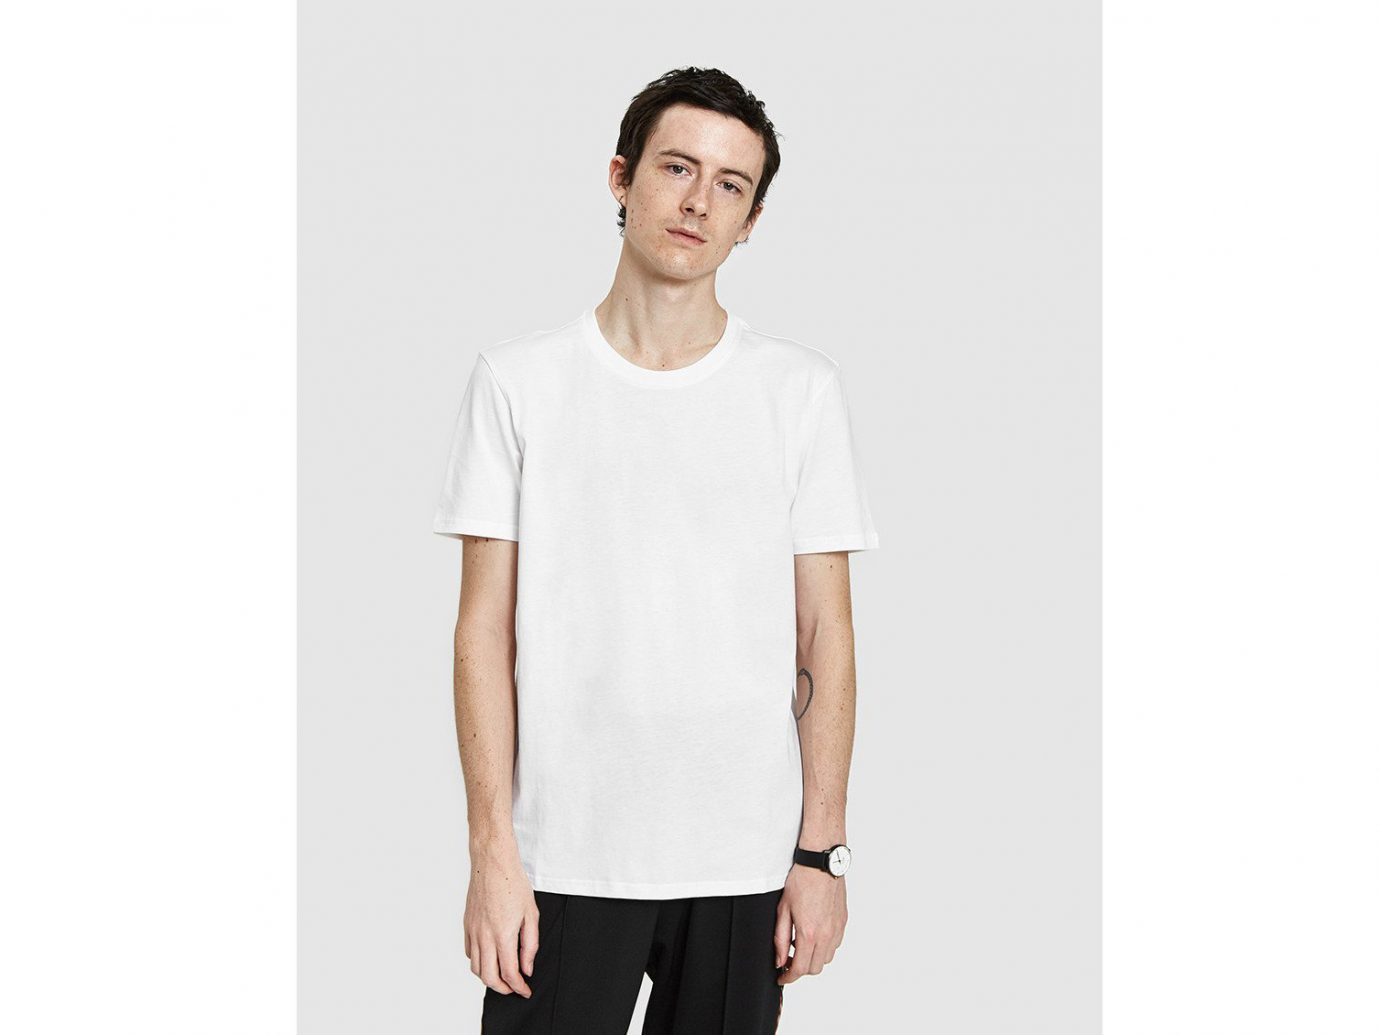 Style + Design Travel Shop person man t shirt white standing clothing sleeve posing shoulder neck product joint collar top dressed trouser male